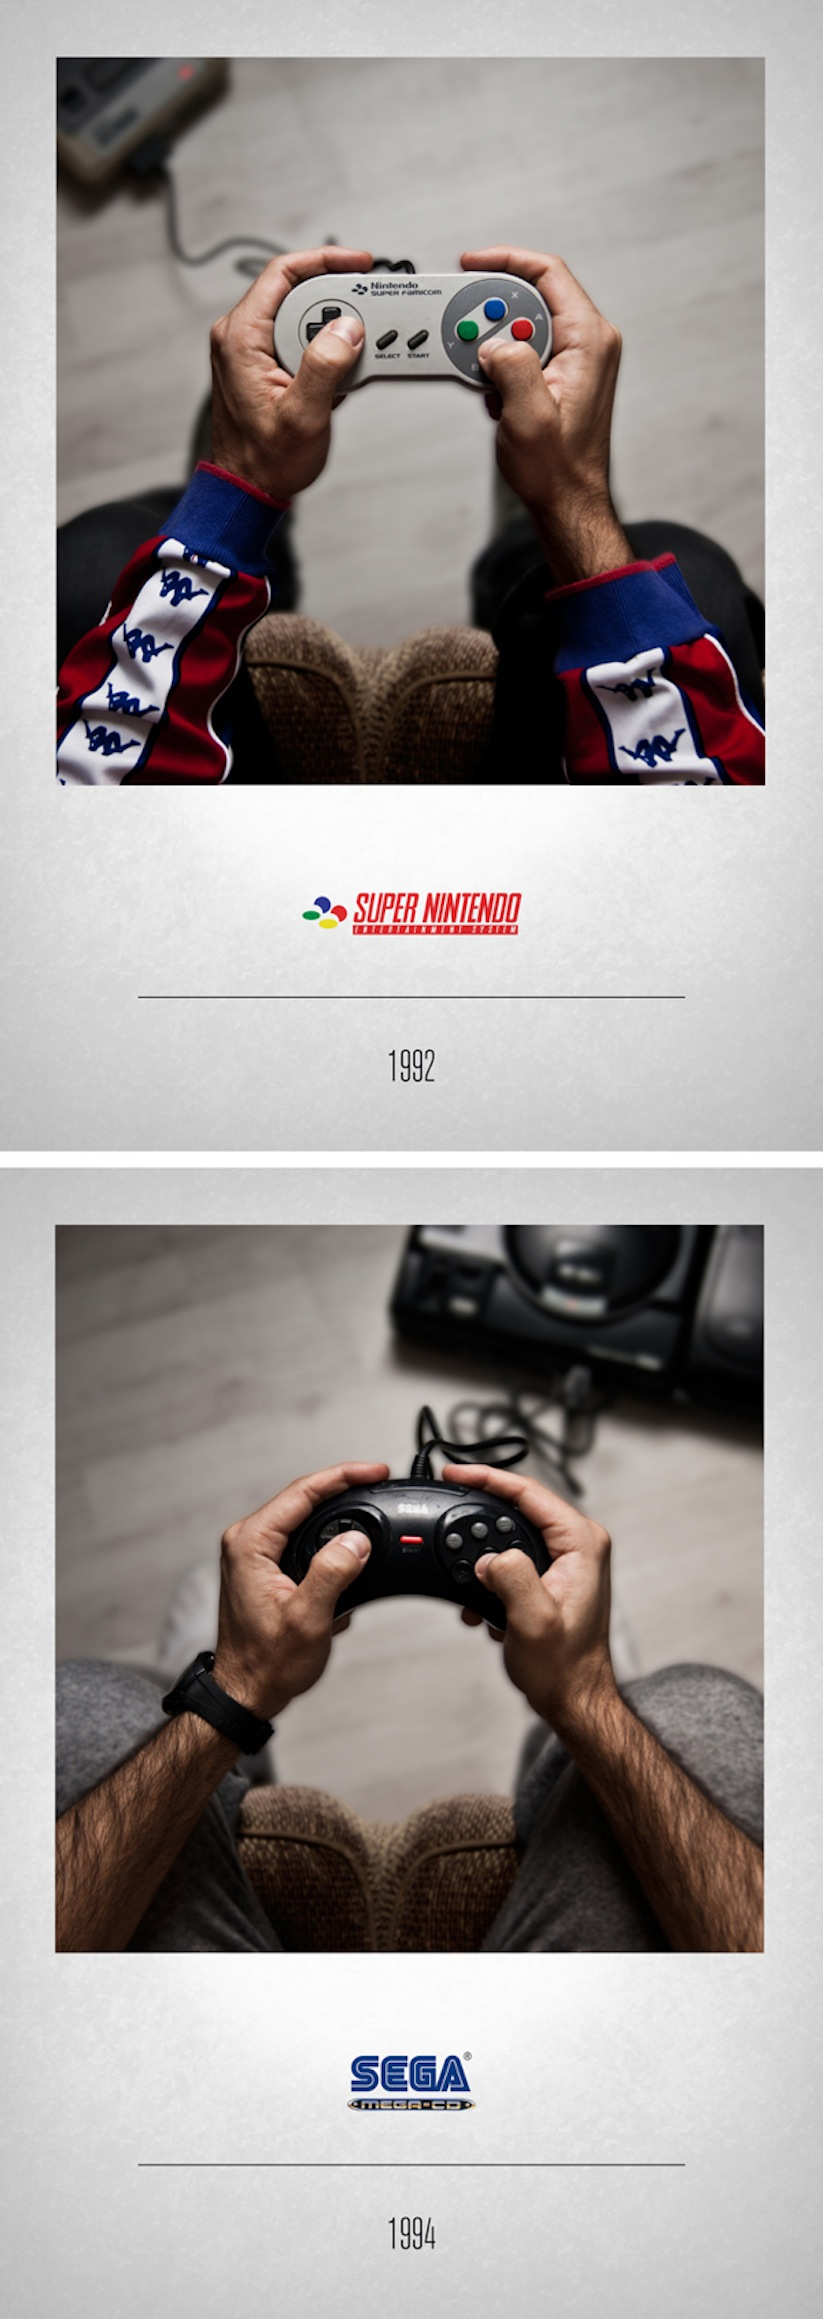 video games history_javier laspiur_5